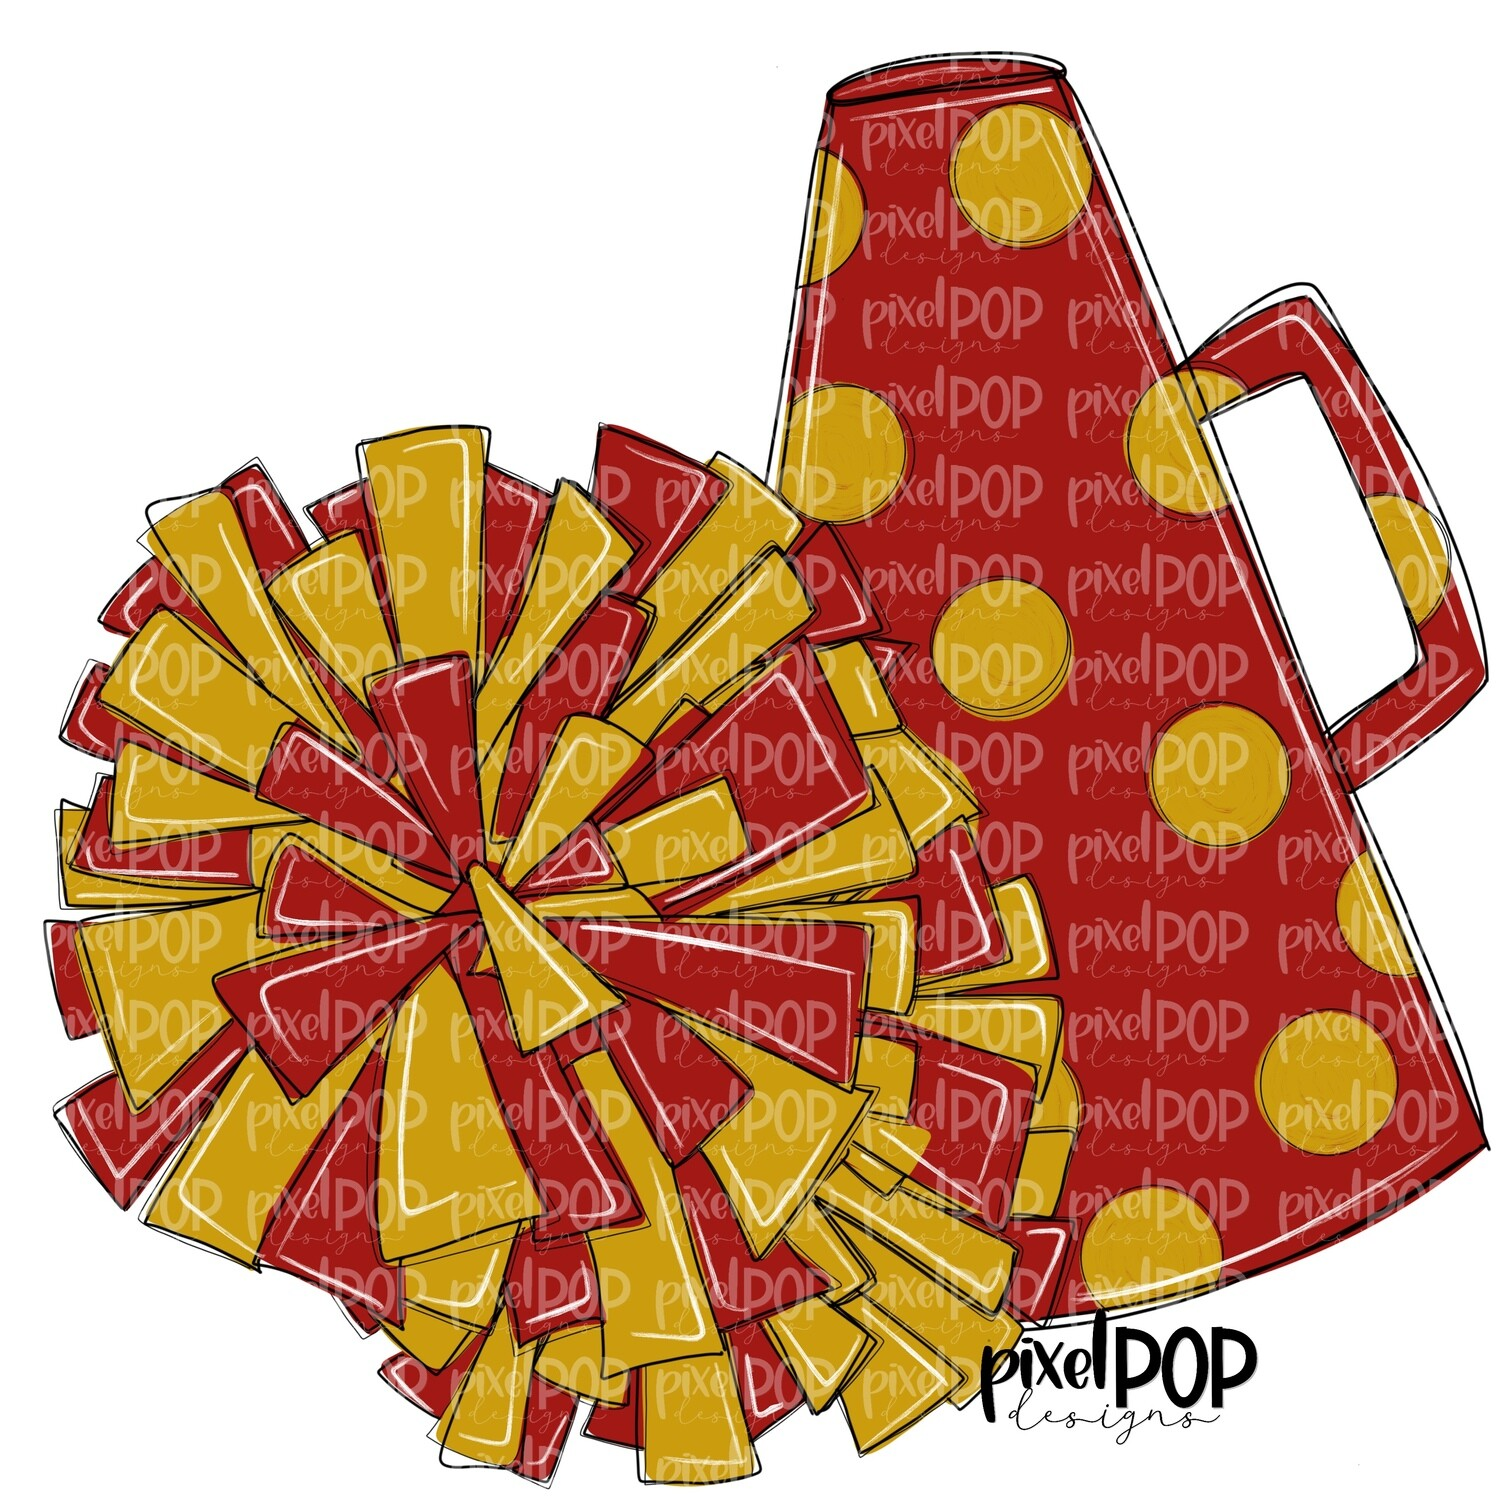 Cheerleading Megaphone and Poms Dark Red and Gold PNG | Cheerleading | Cheer Design | Cheer Art | Cheer Blank | Sports Art